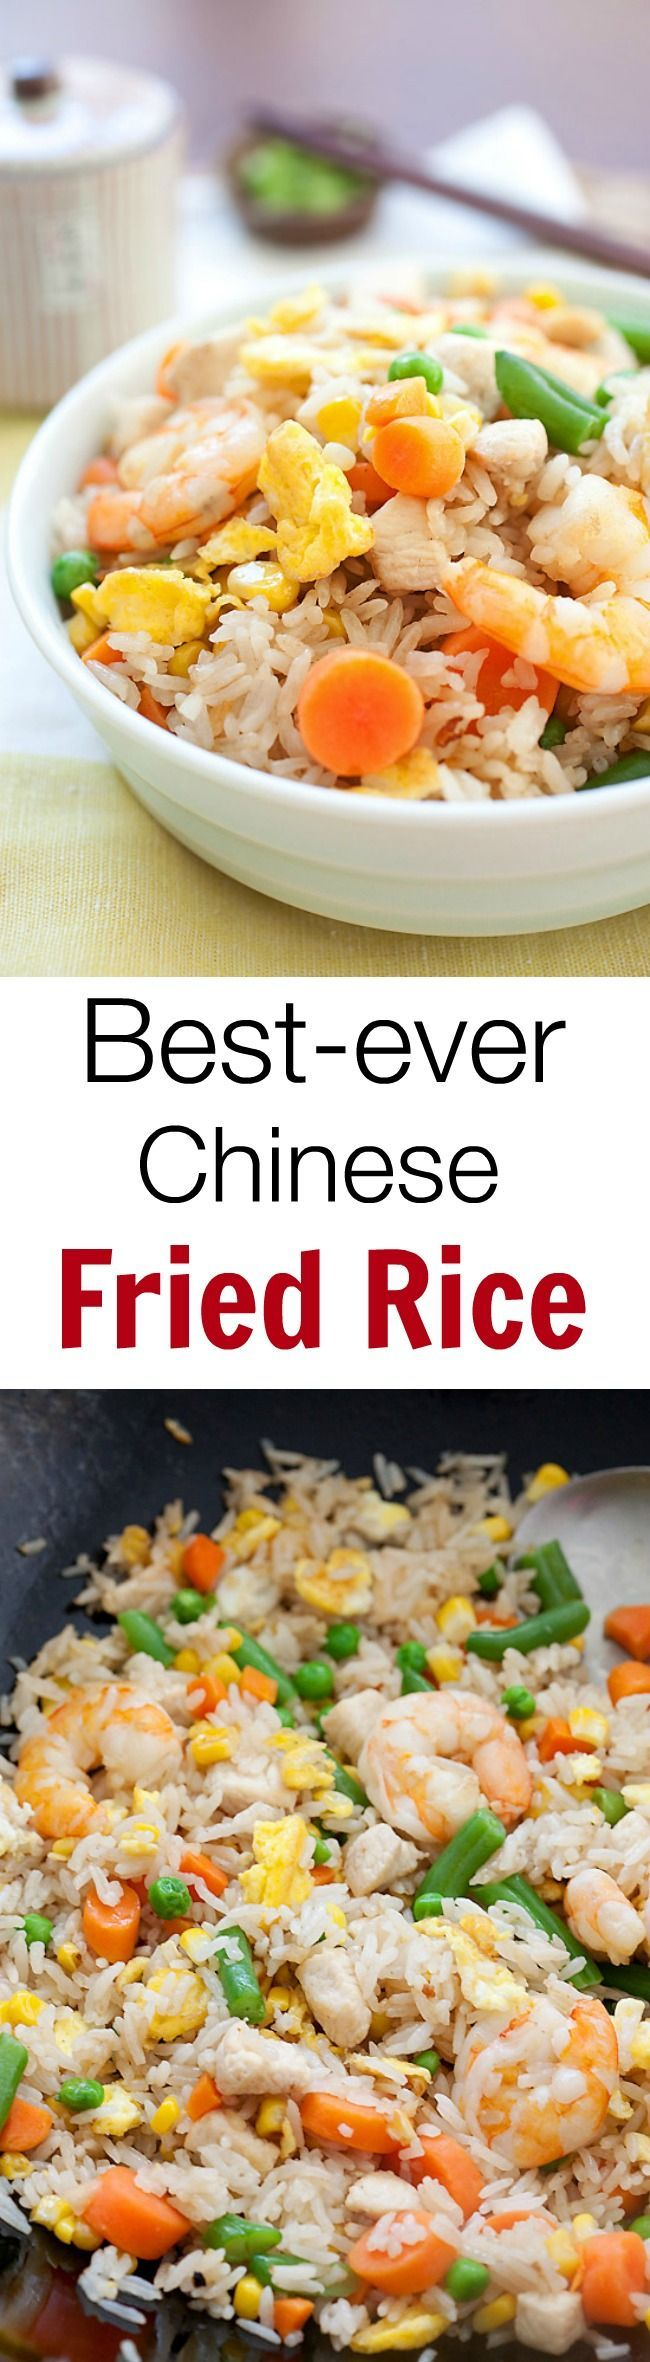 Fried Rice - easy Chinese fried rice recipe with rice, eggs, chicken, shrimp and tastes SO MUCH better than takeout!! | rasamalaysia.com